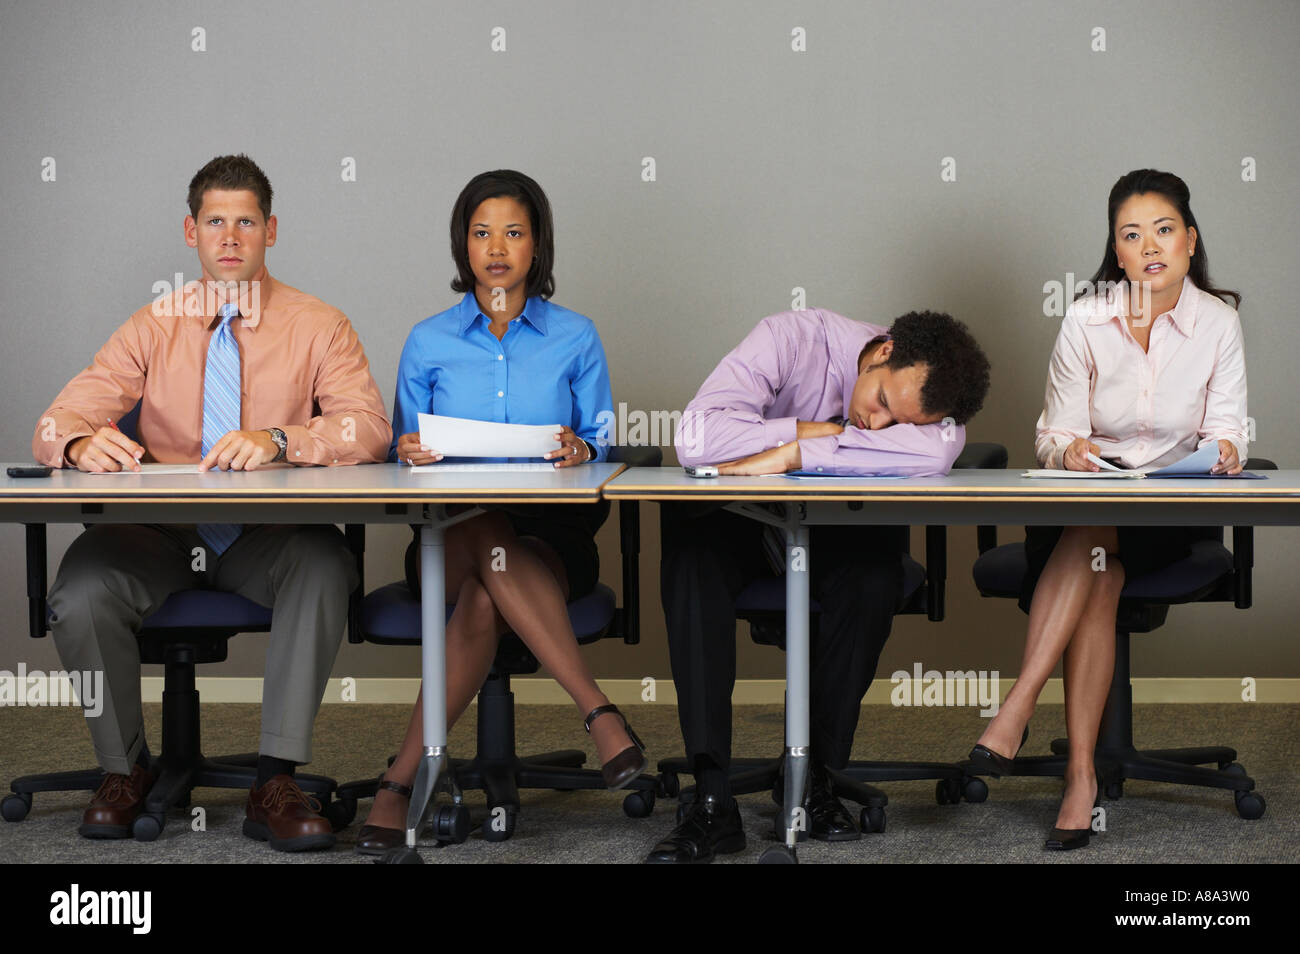 Businessman sleeping during a meeting - Stock Image